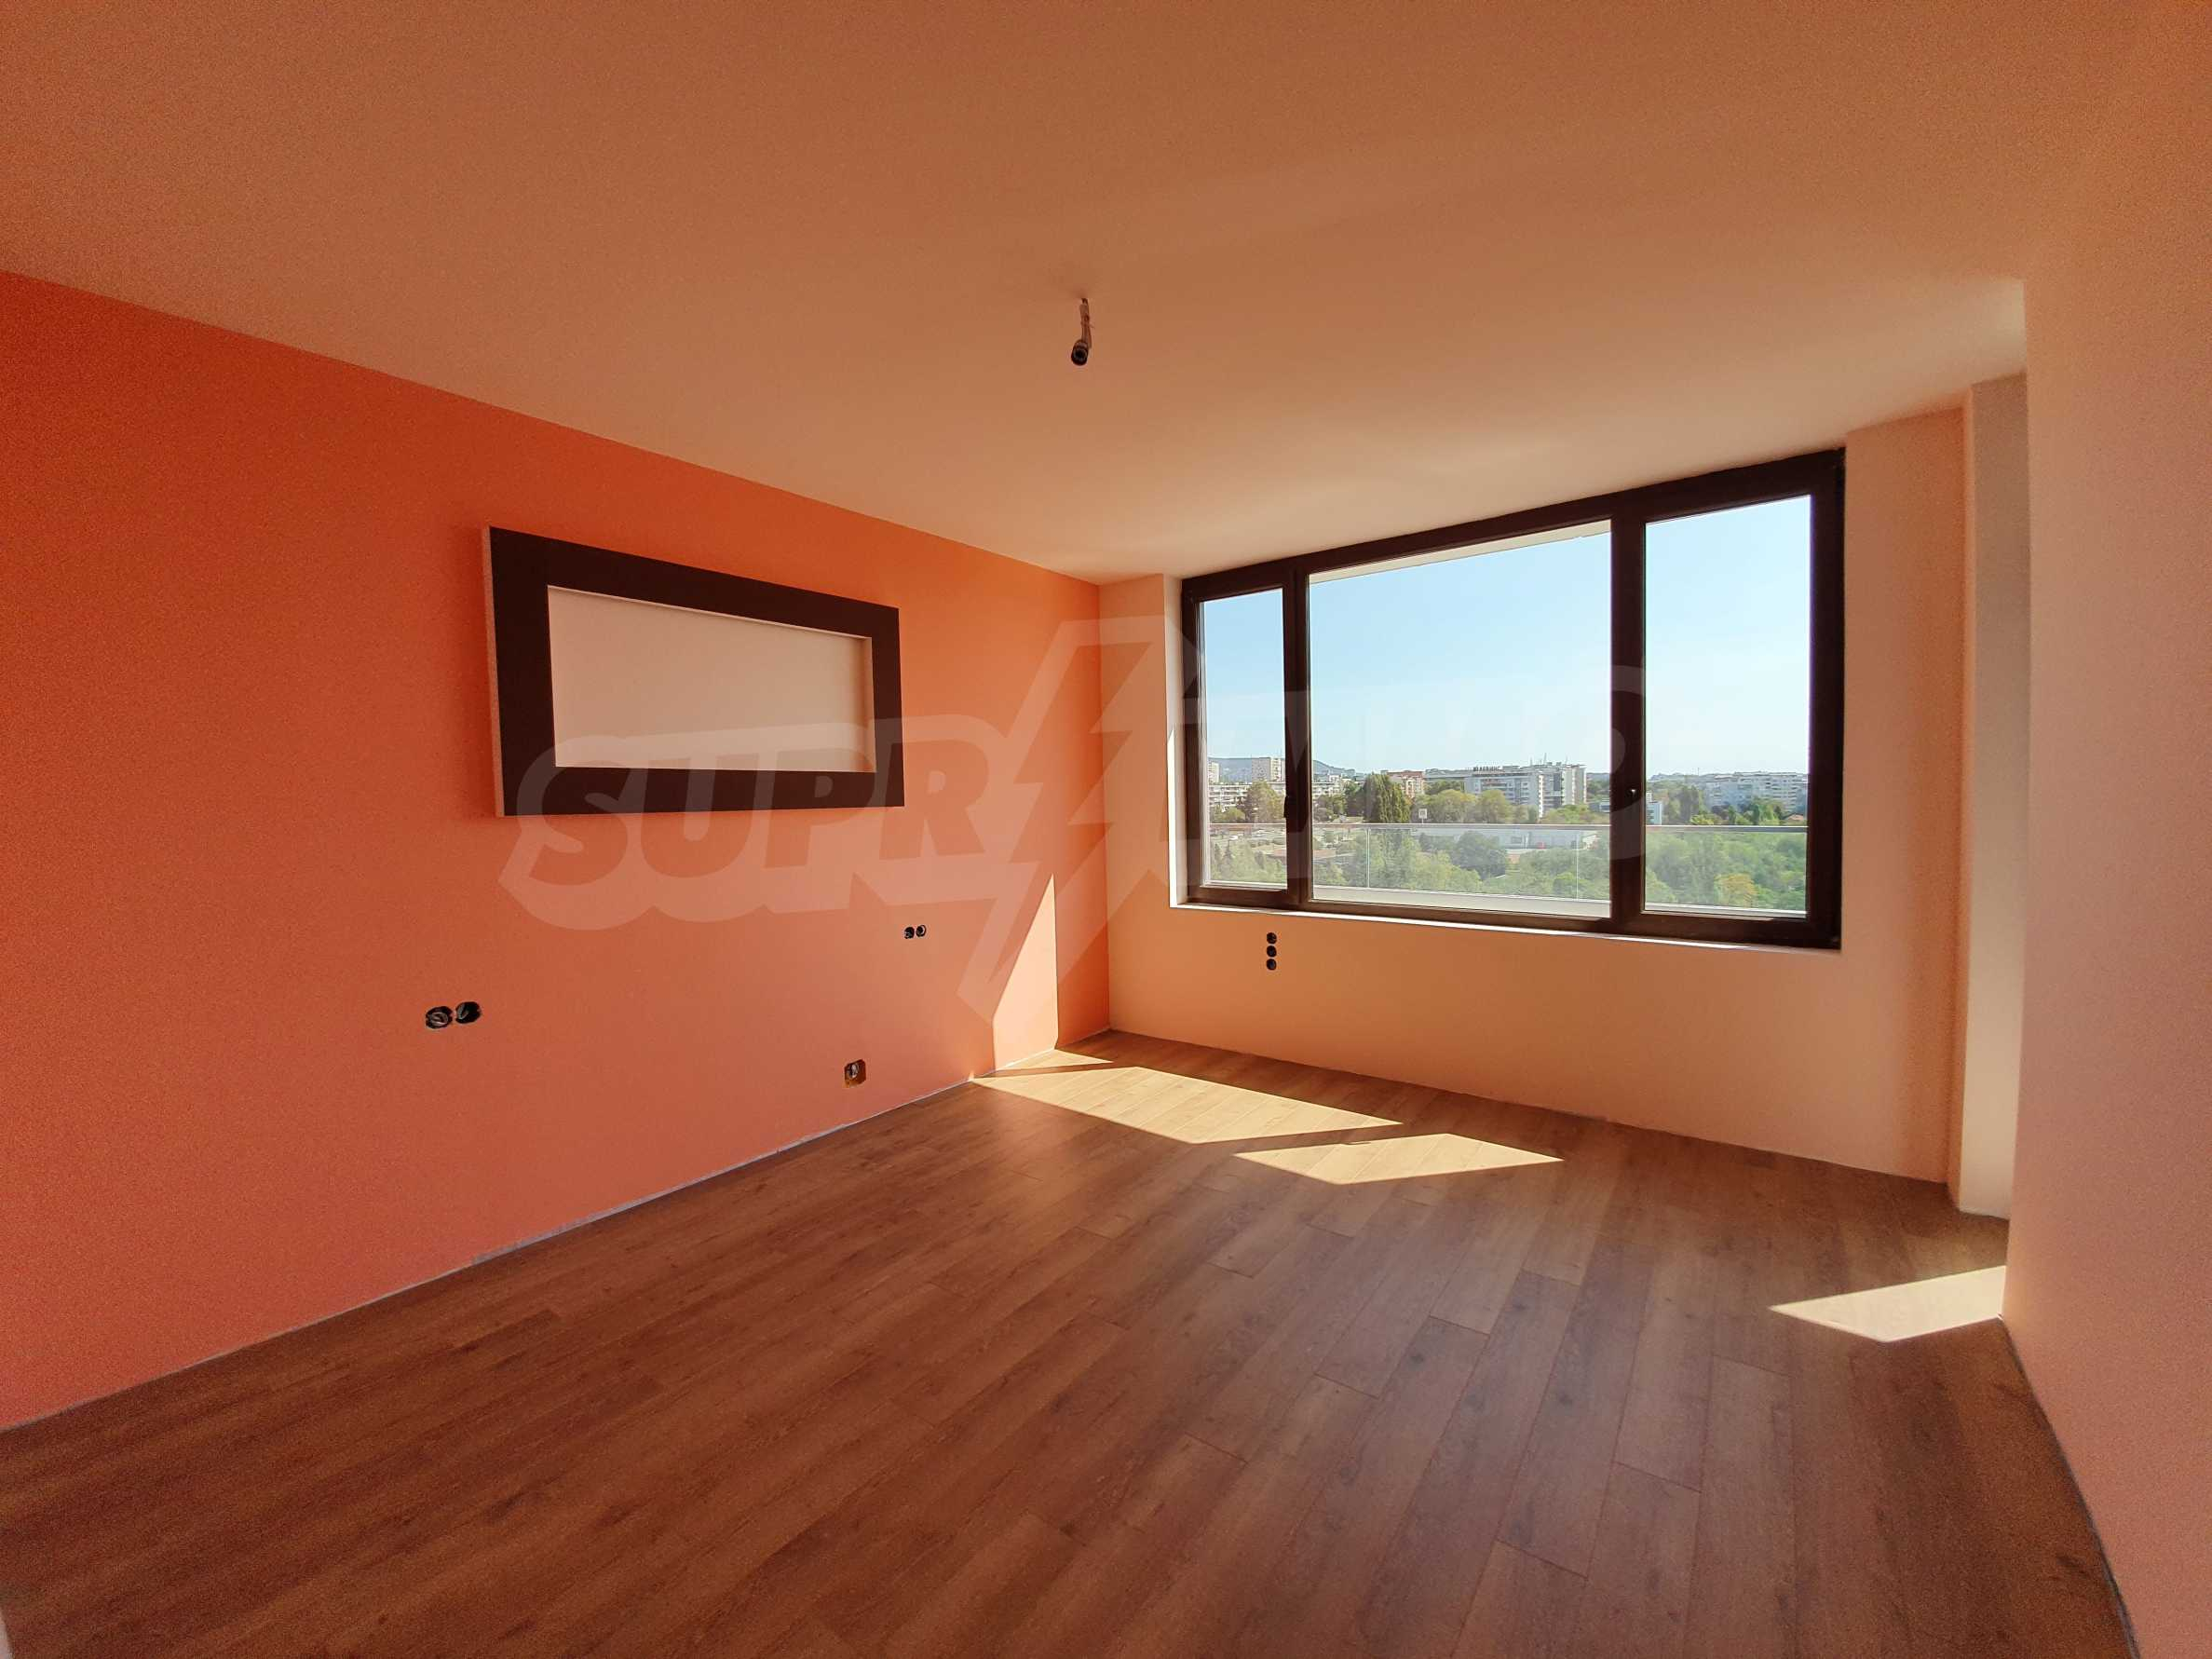 Panoramic two-bedroom apartment with views of the lake and Varna 16